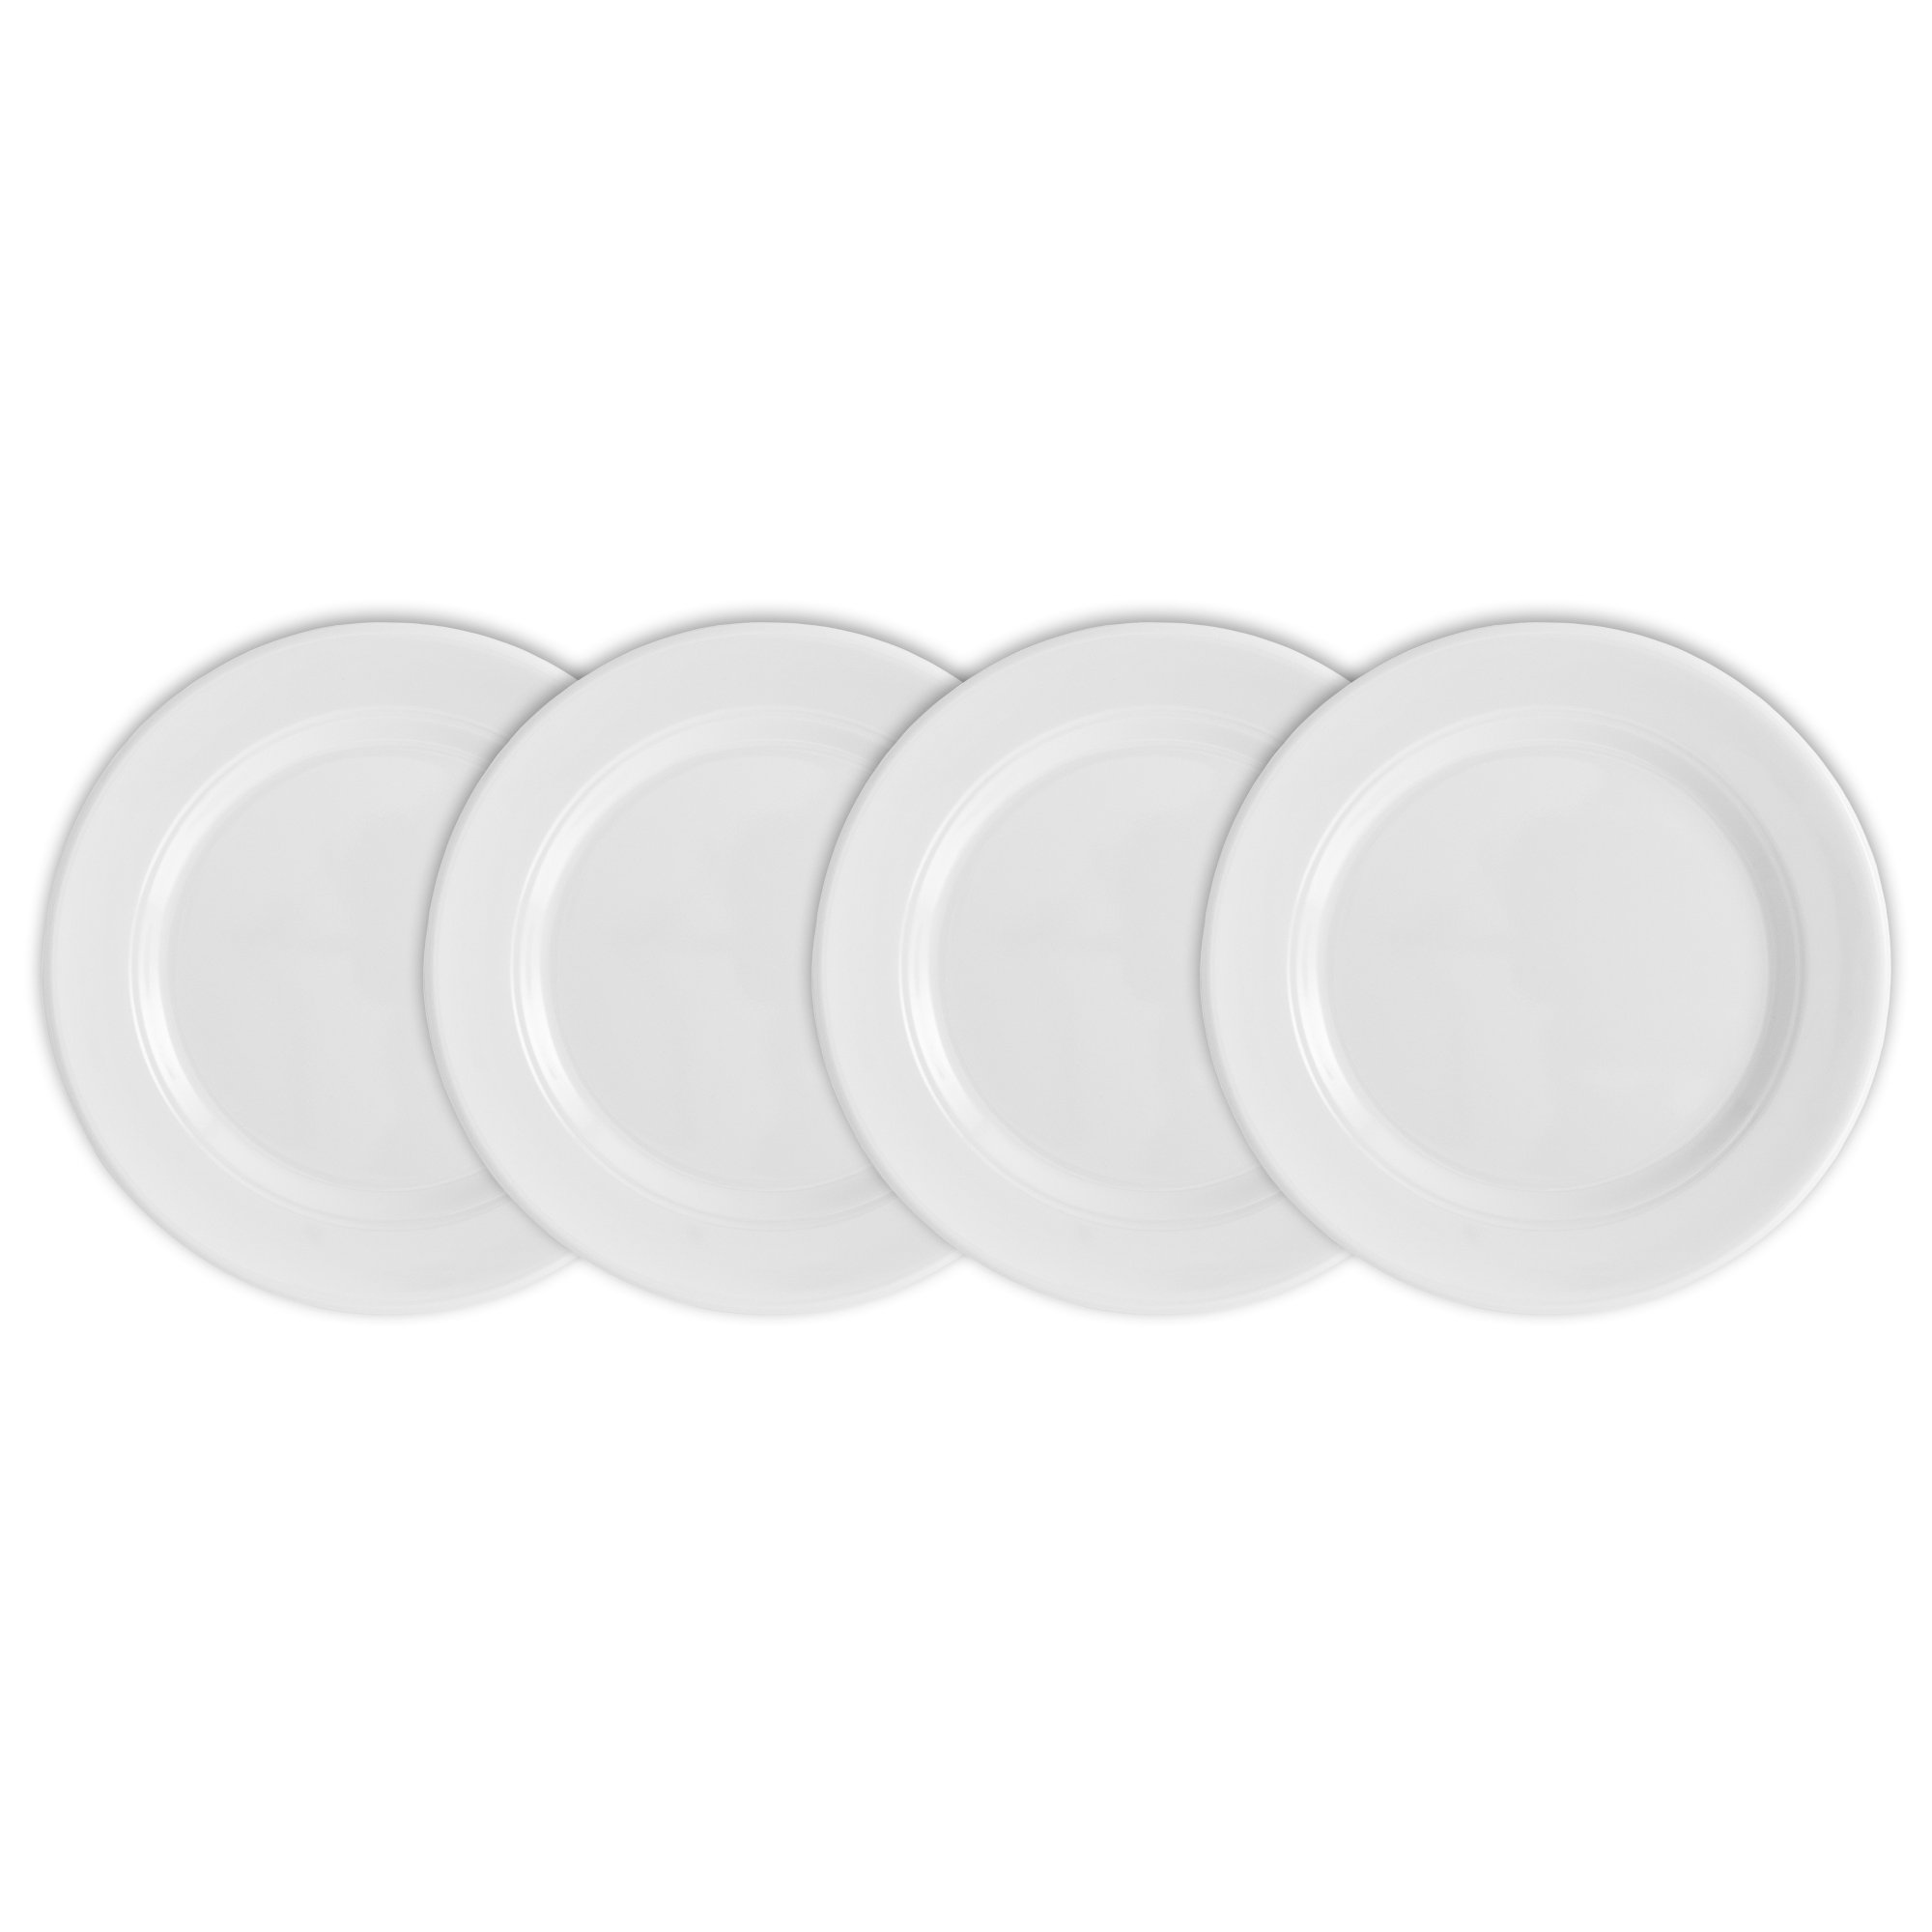 Q Squared Diamond Round Bread & Butter Plate, 5-1/2-inches, Set of 4, White